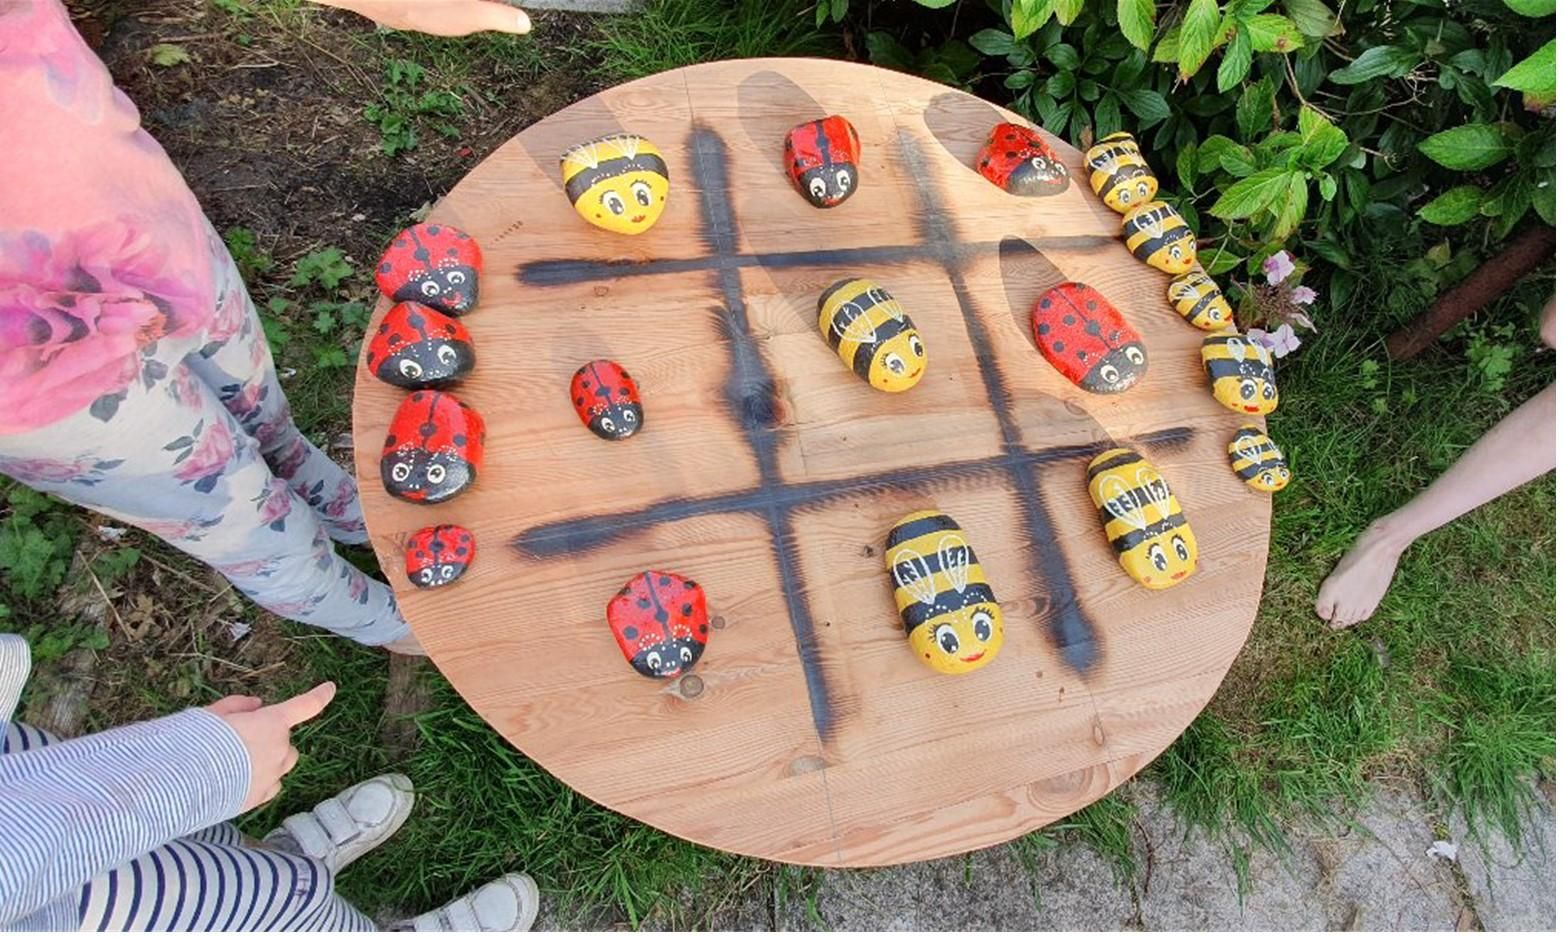 How to Make a Ladybird and Bumblebee Kids Game for Garden